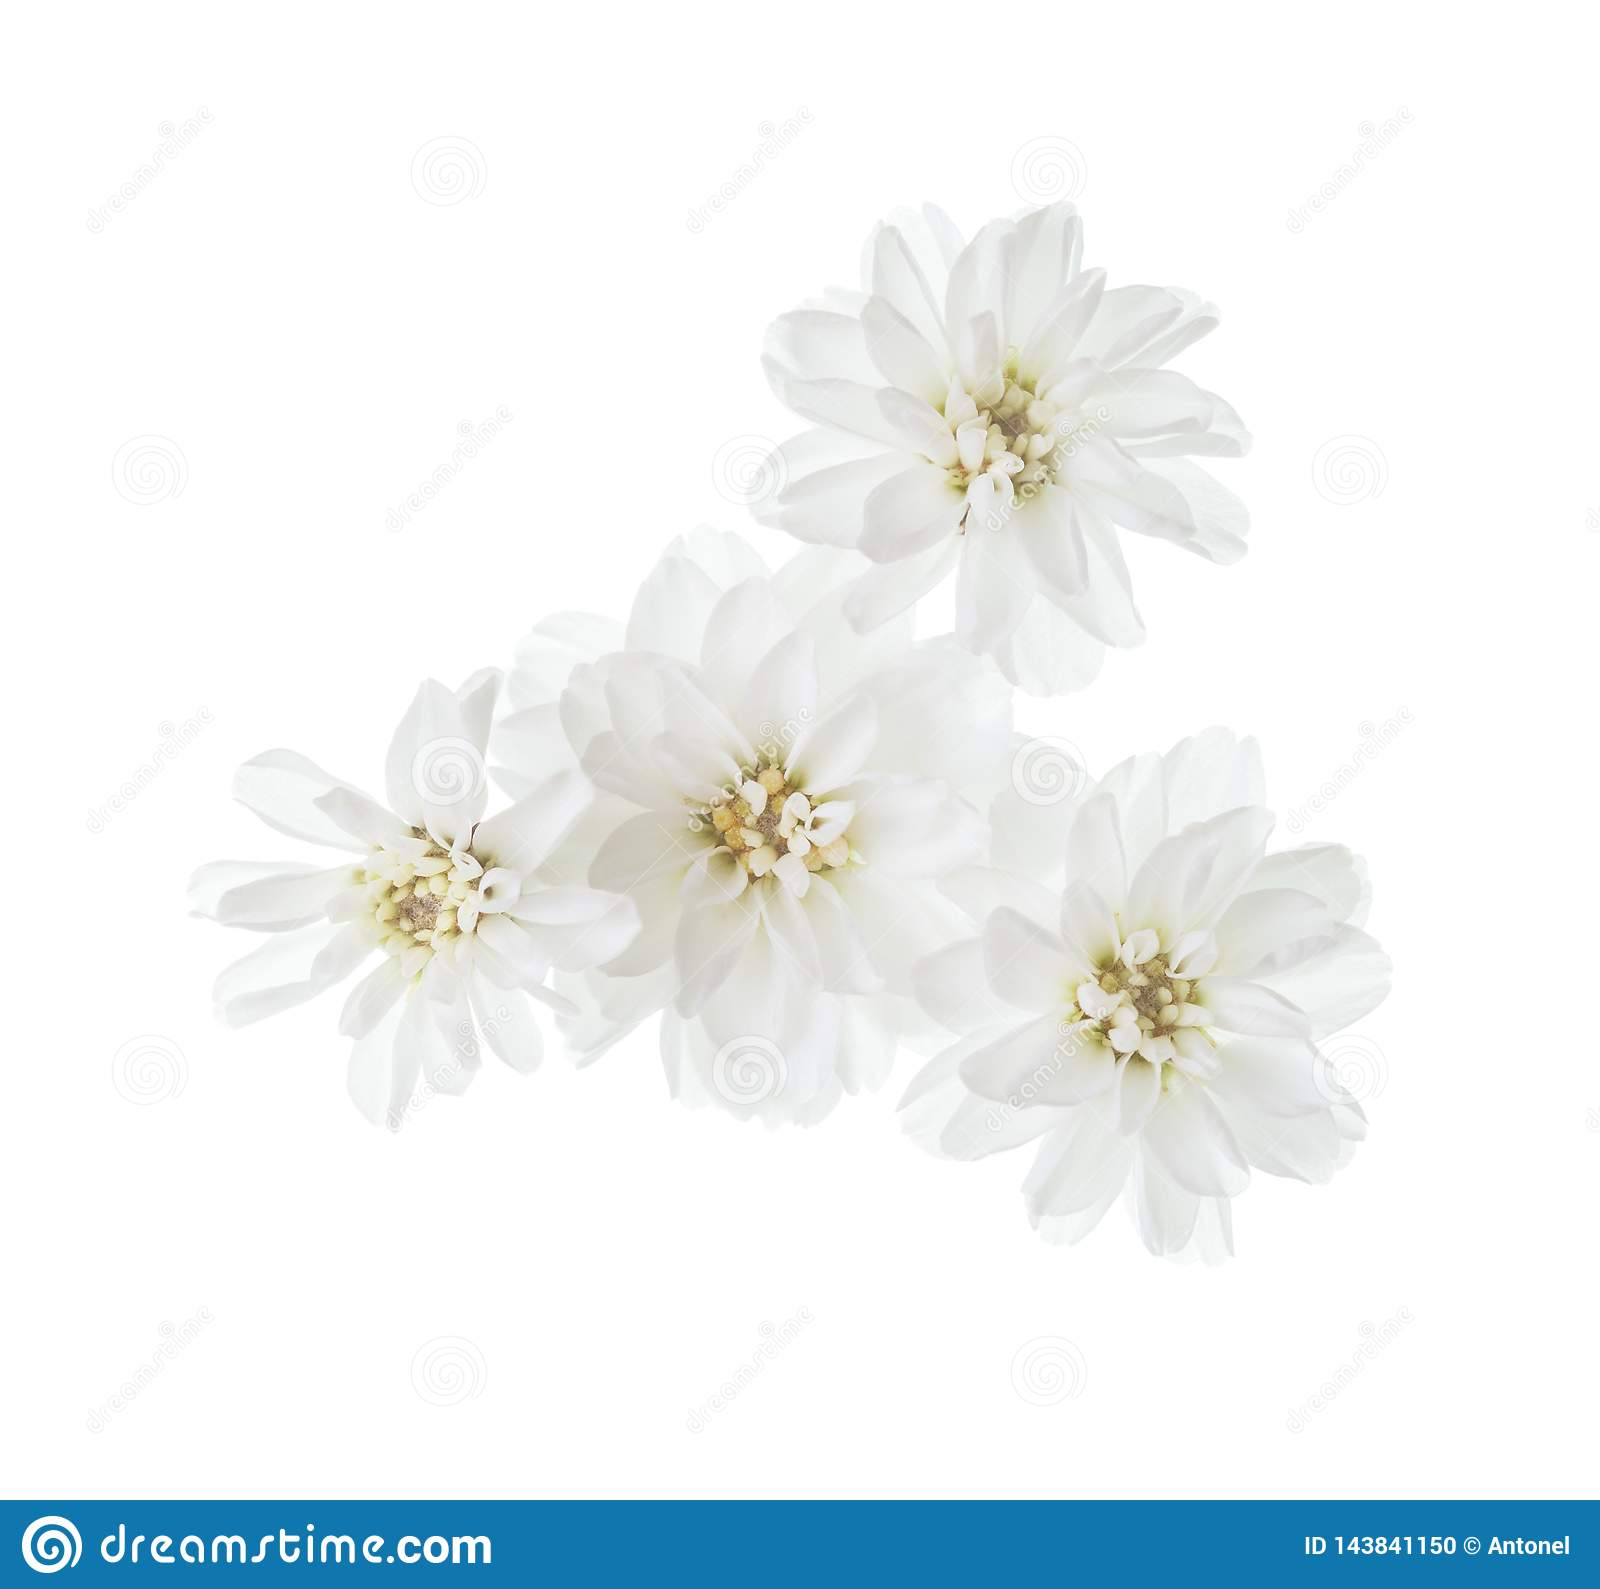 Tiny flowers of sneezewort Achillea ptarmica isolated on white background